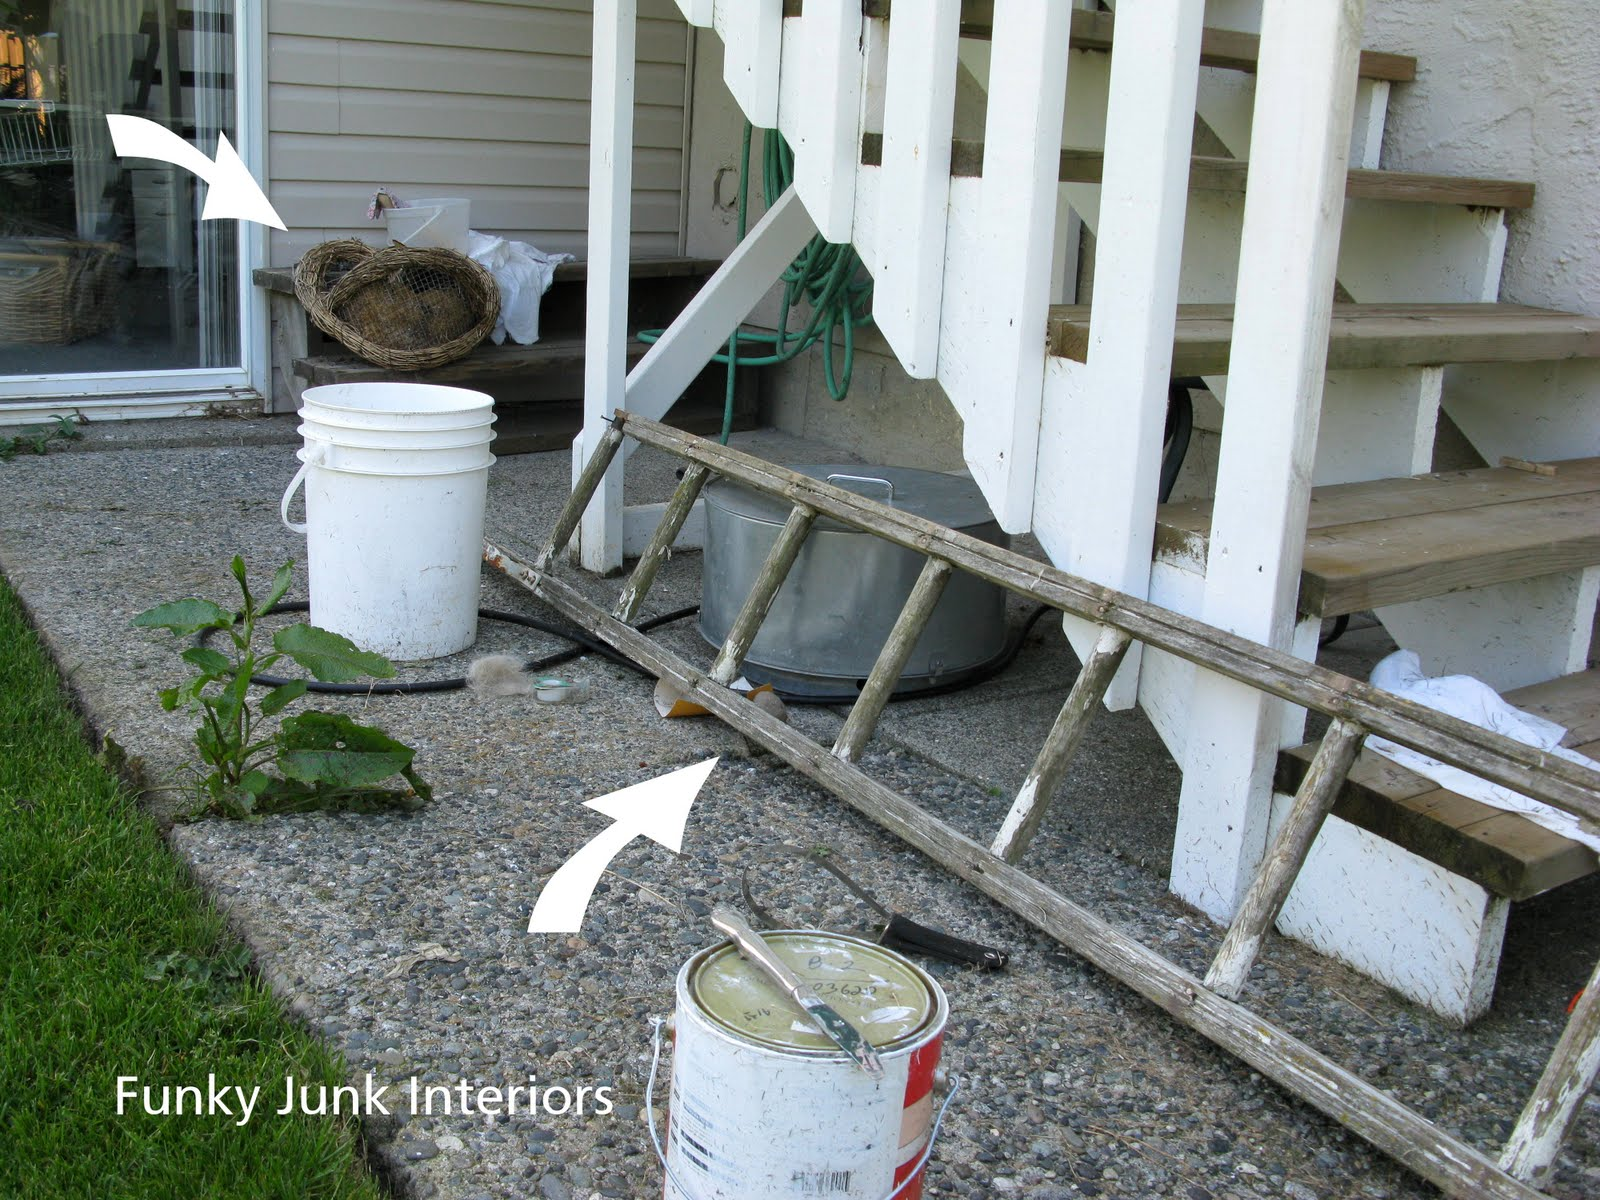 Decorating the great outdoors with junk for 39 gitter done for Funky junk home decor newfoundland